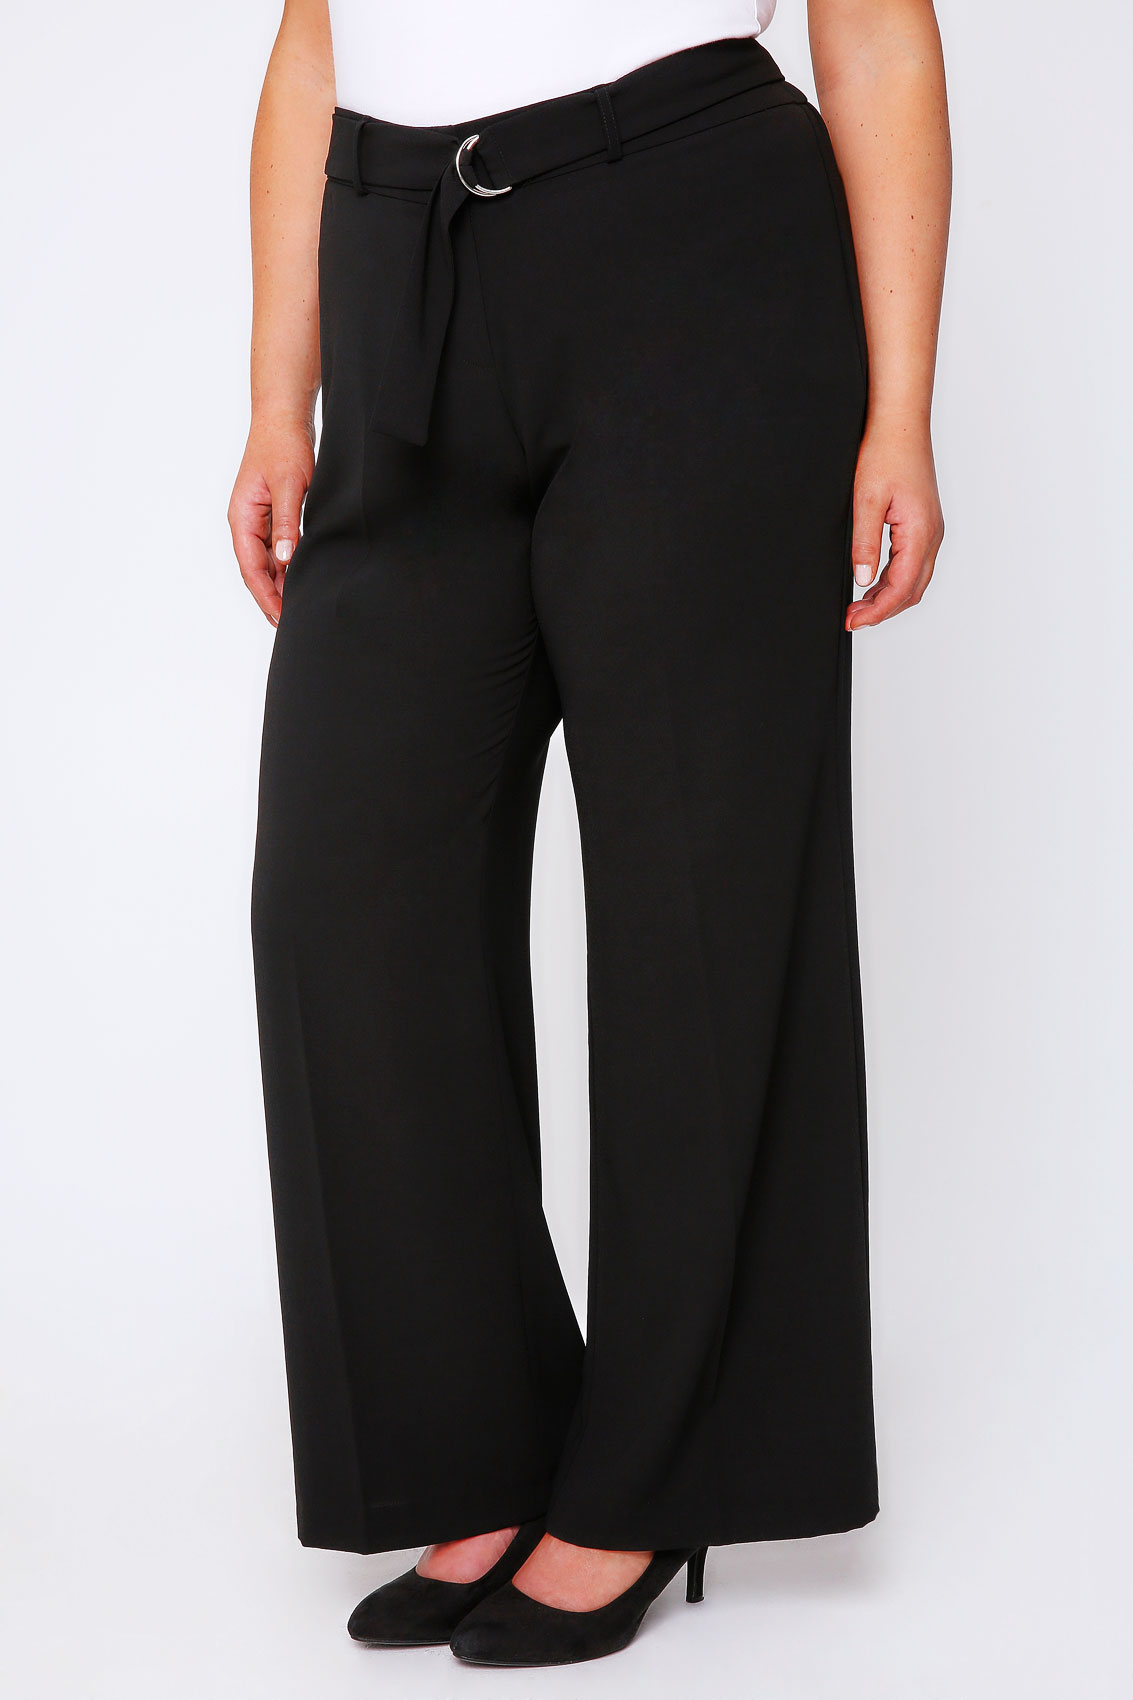 Product Description: Featuring a soft light gray material, a wide-leg fit, high waist and hidden side zip closure, these ultra-chic palazzo trousers are perfect for showing off your waist and peach.